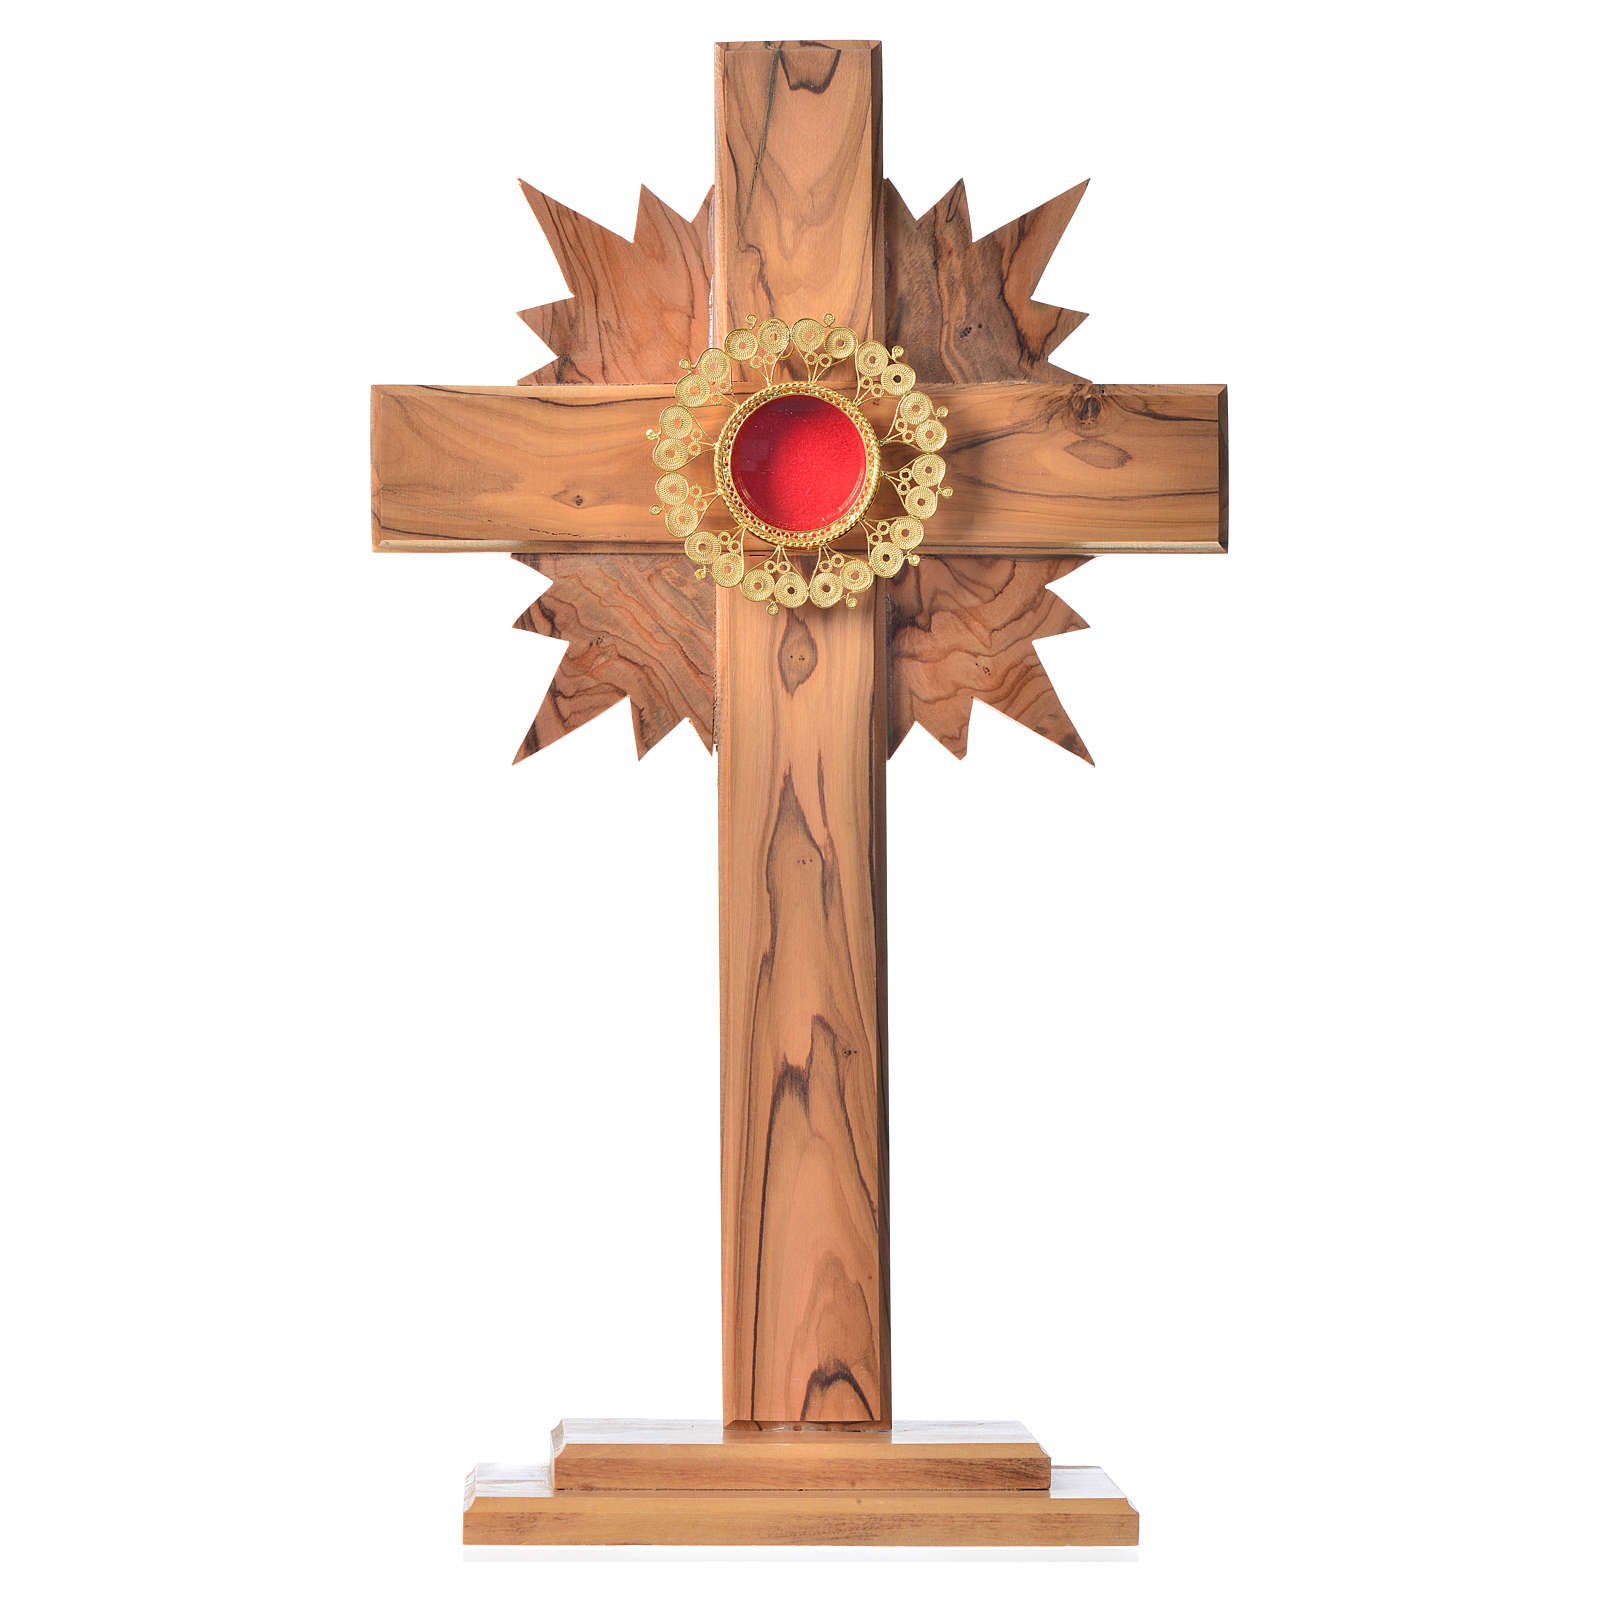 Reliquary olive wood with cross halo, filigree shrine 4